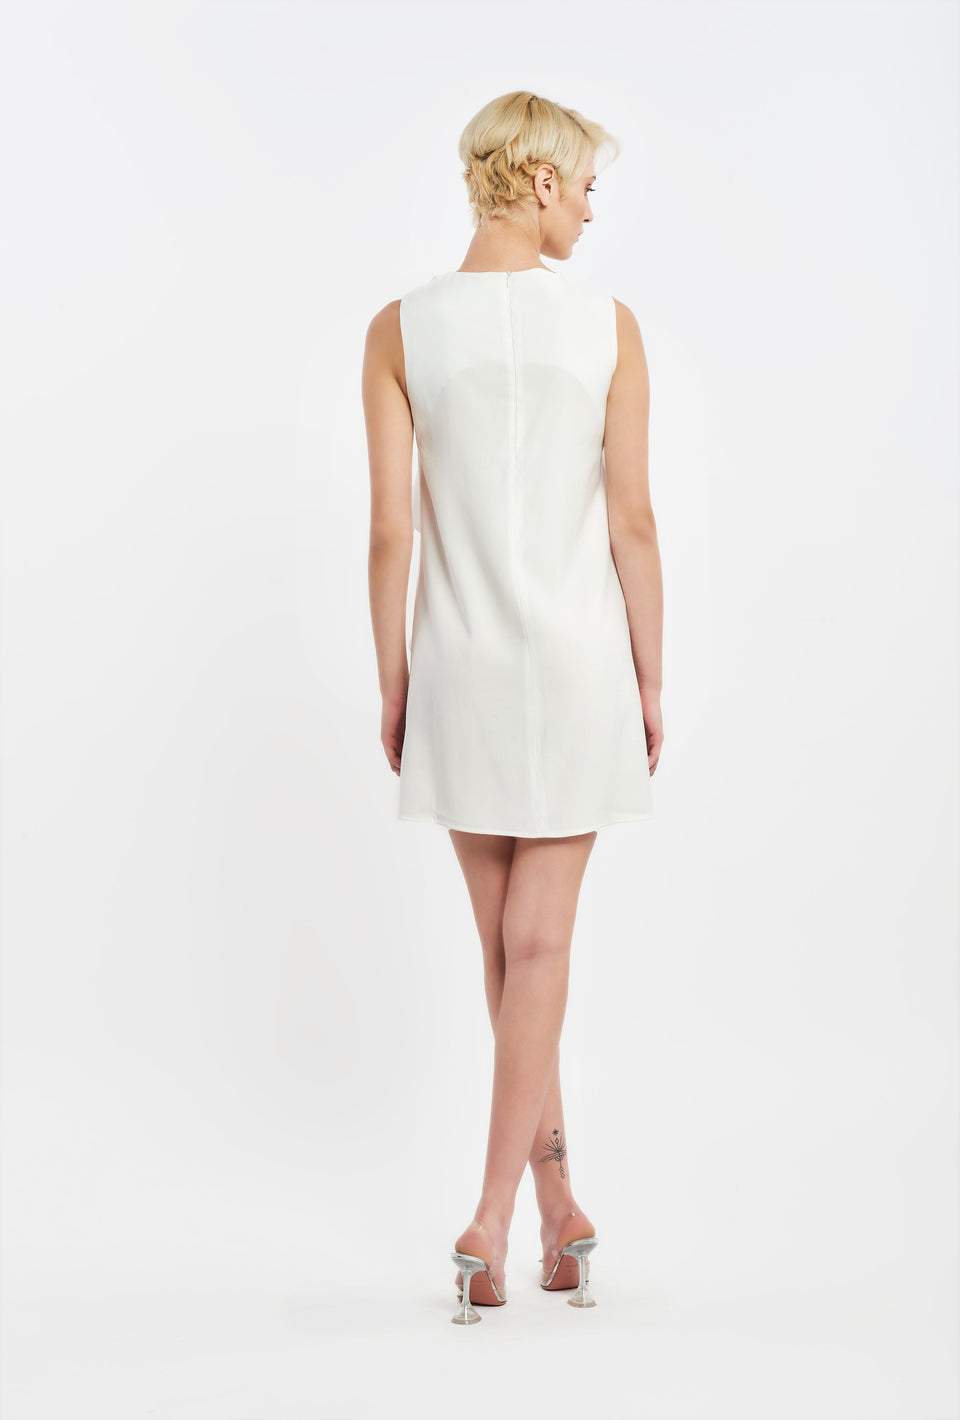 A-LINE DRESS WITH RUFFLE DECORATIVE WHITE